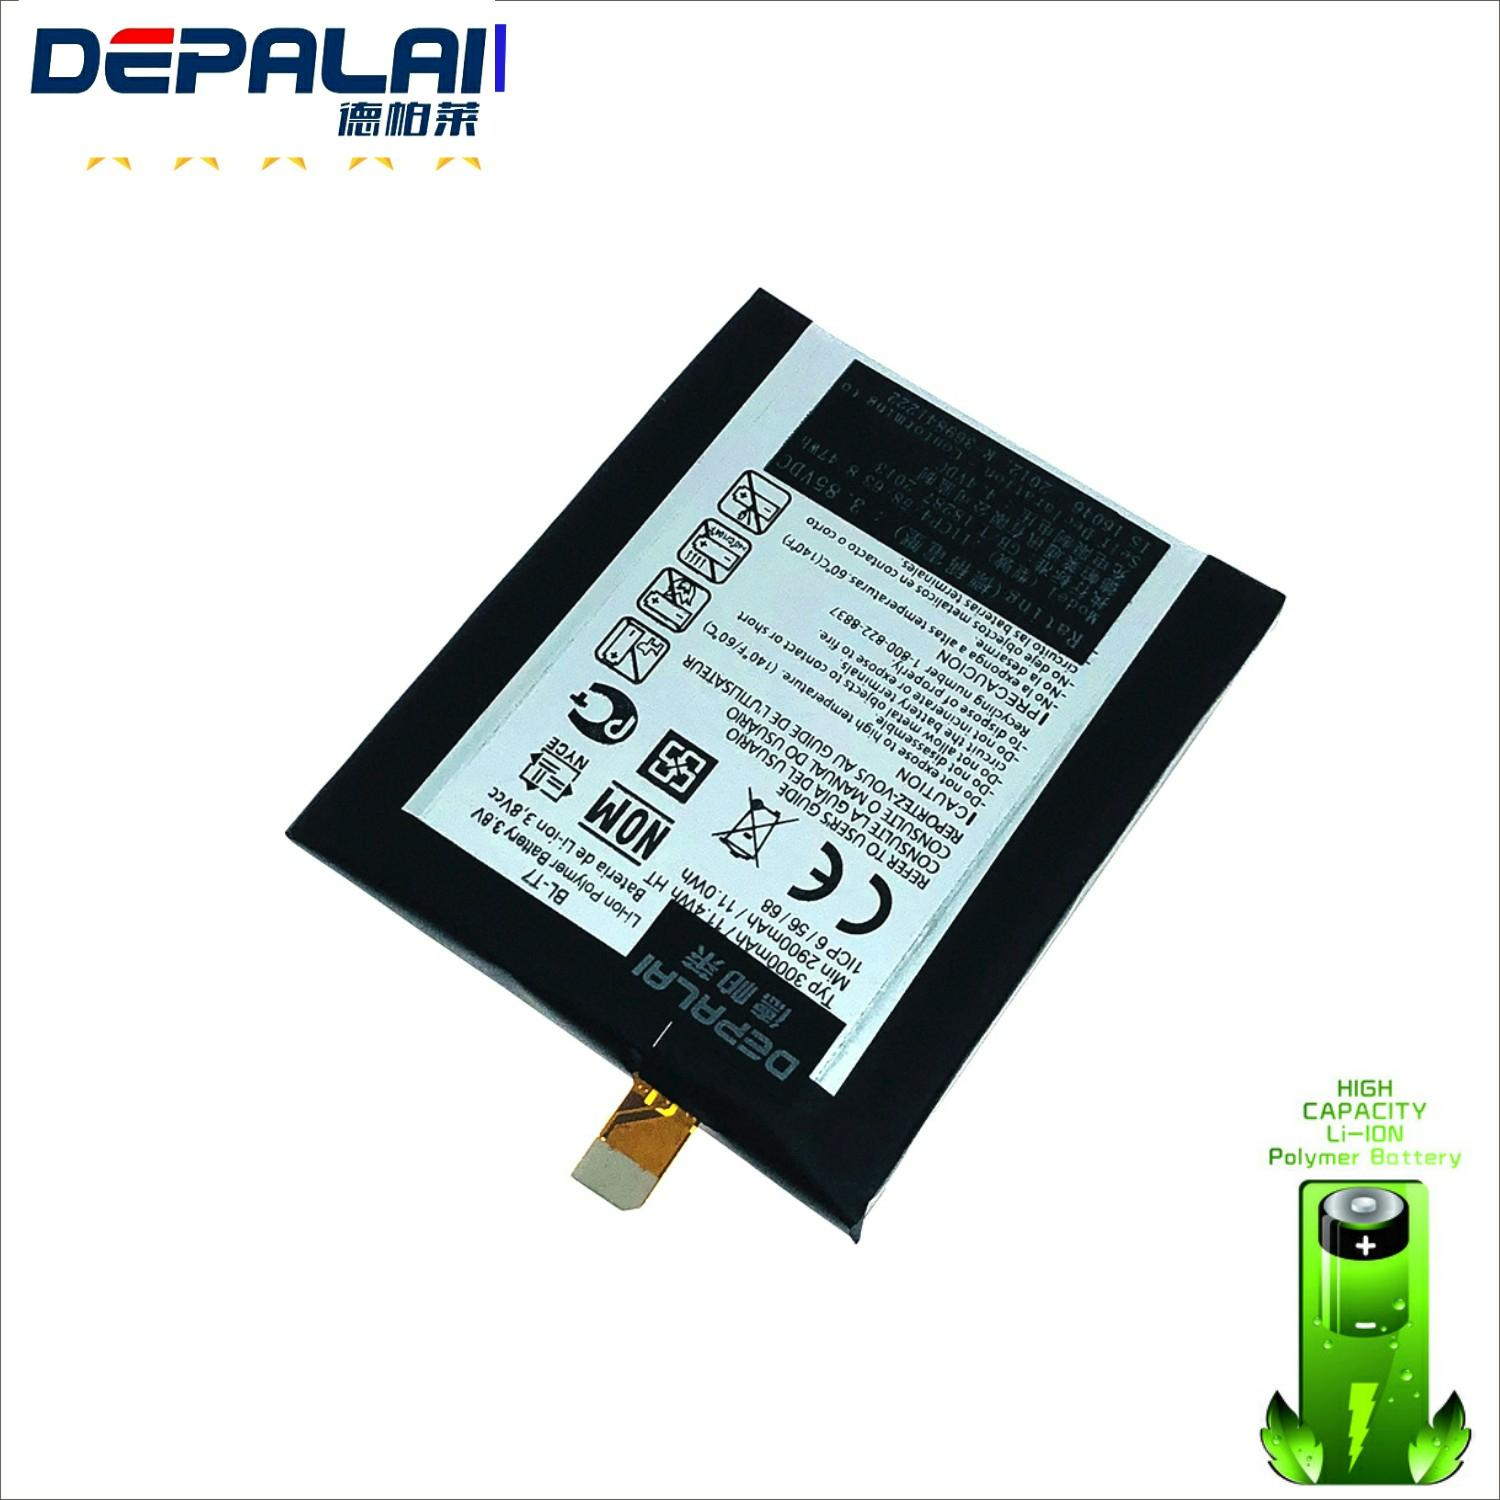 High Quality <font><b>BL</b></font>-<font><b>T7</b></font> Battery For <font><b>LG</b></font> Optimus G2 D802 D801 D800 LS980 VS980 Li-ion Battery 3000mAh Replacment Mobile Phone Bateria image